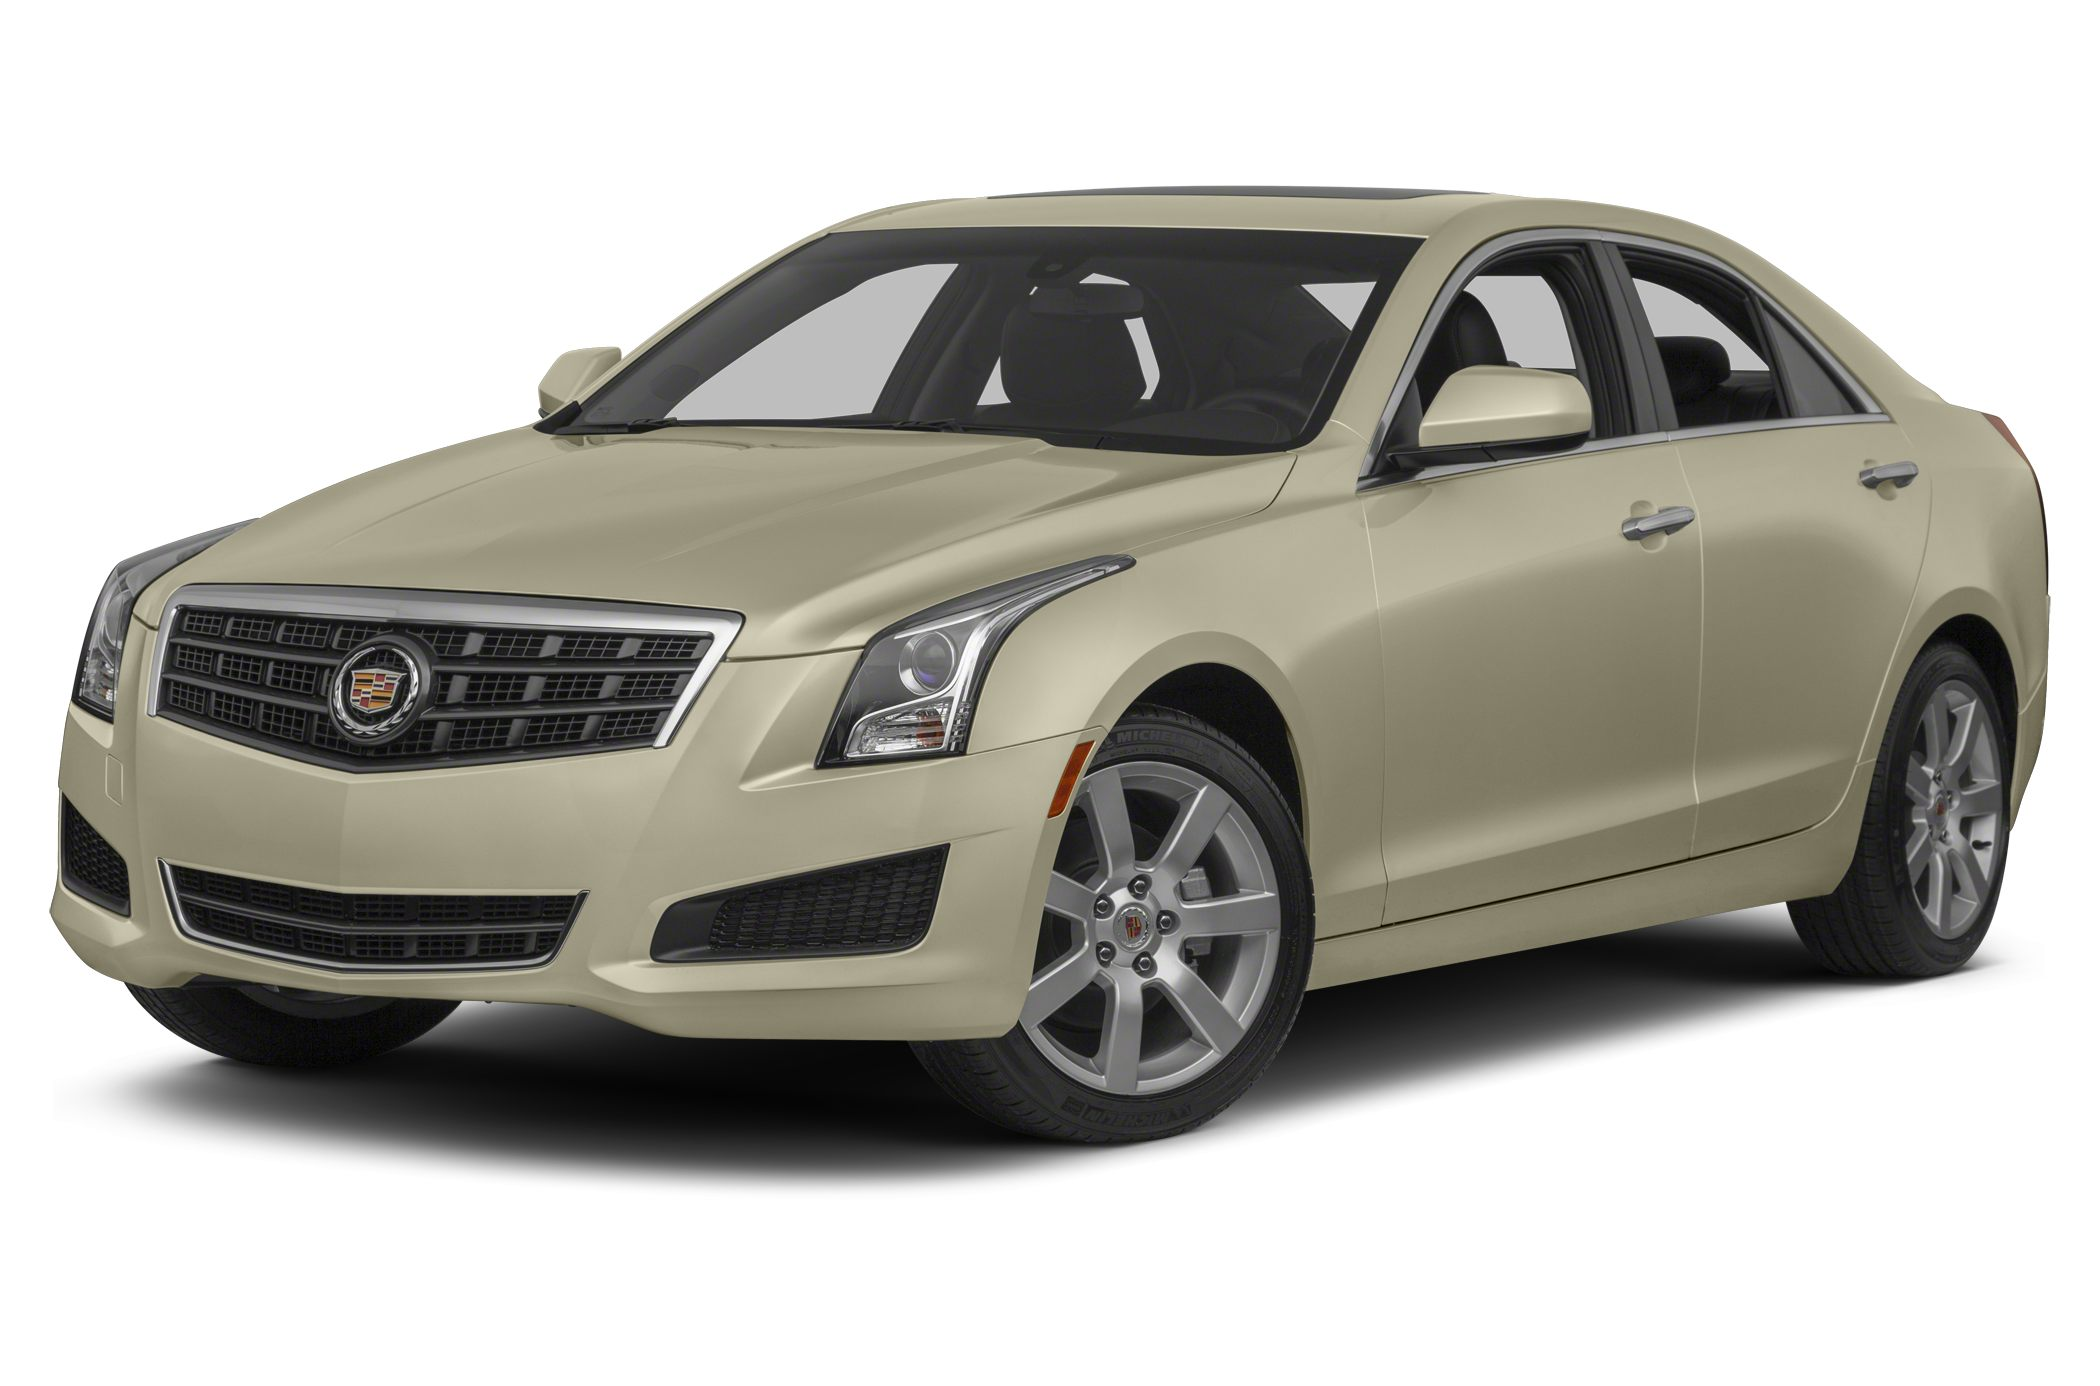 2014 Cadillac ATS 2.0L Turbo Luxury Sedan for sale in Columbia for $43,835 with 0 miles.